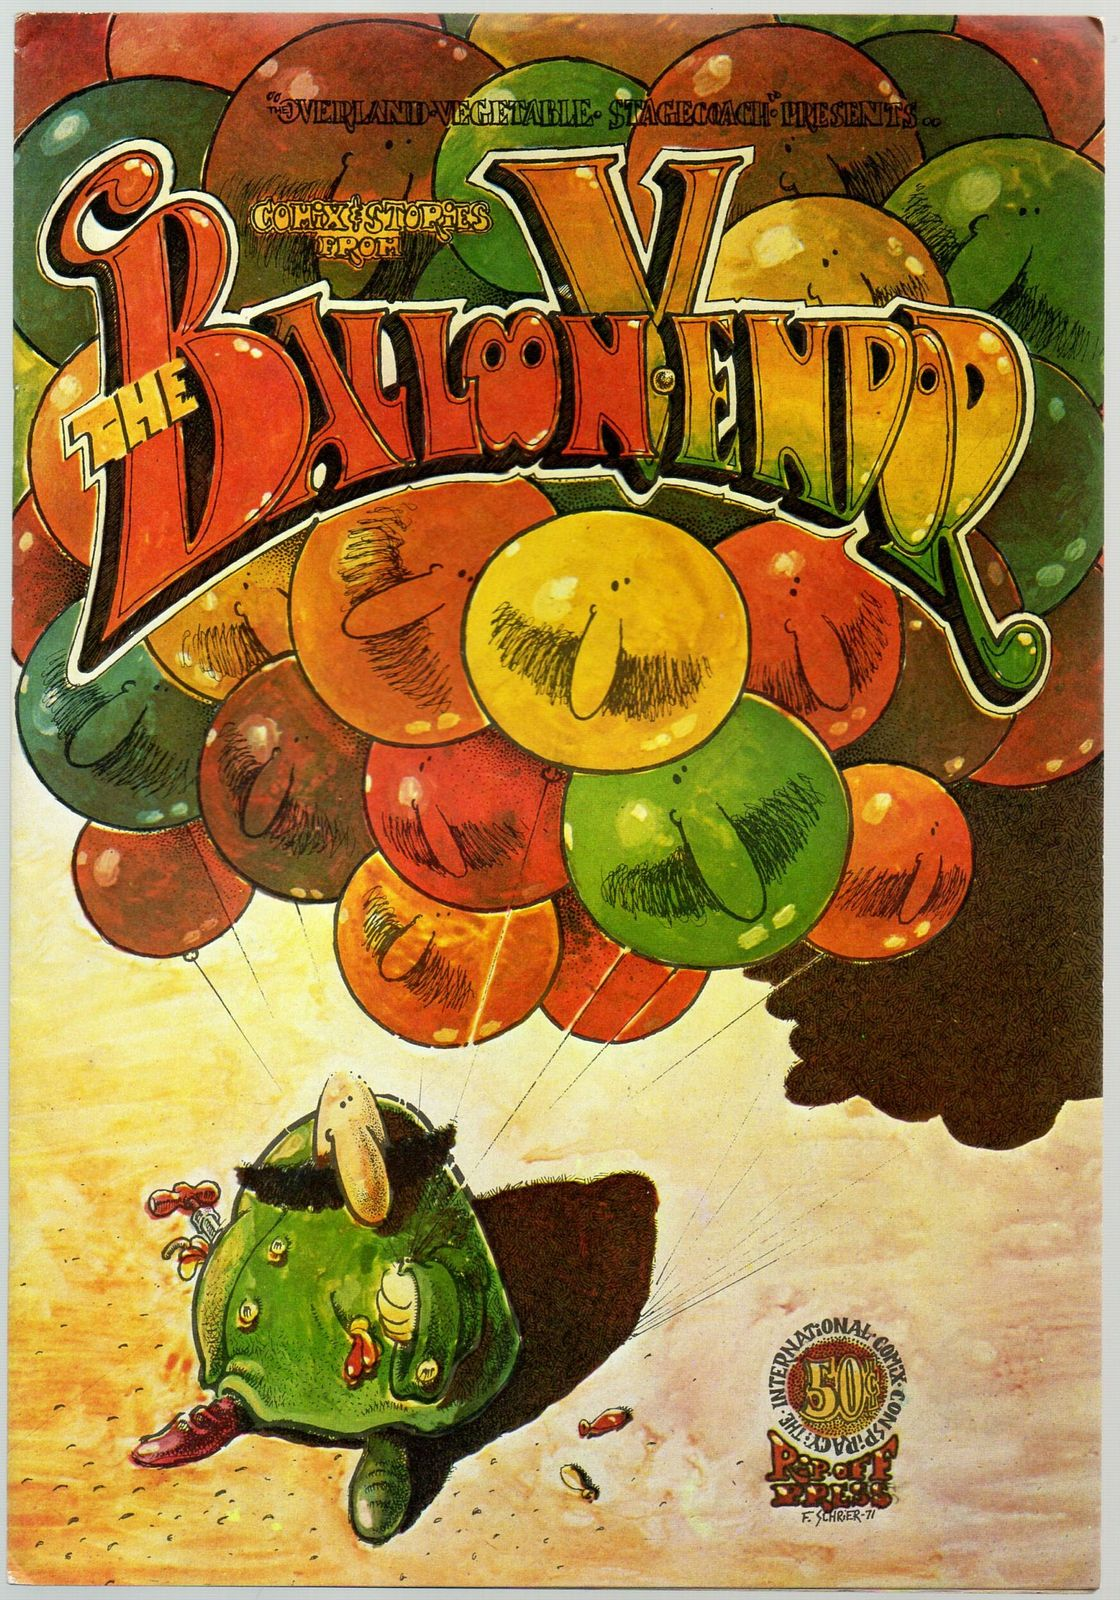 Balloon Vendor 1971 Rip Off Press underground comix Dave Sheridan, Fred Schrier